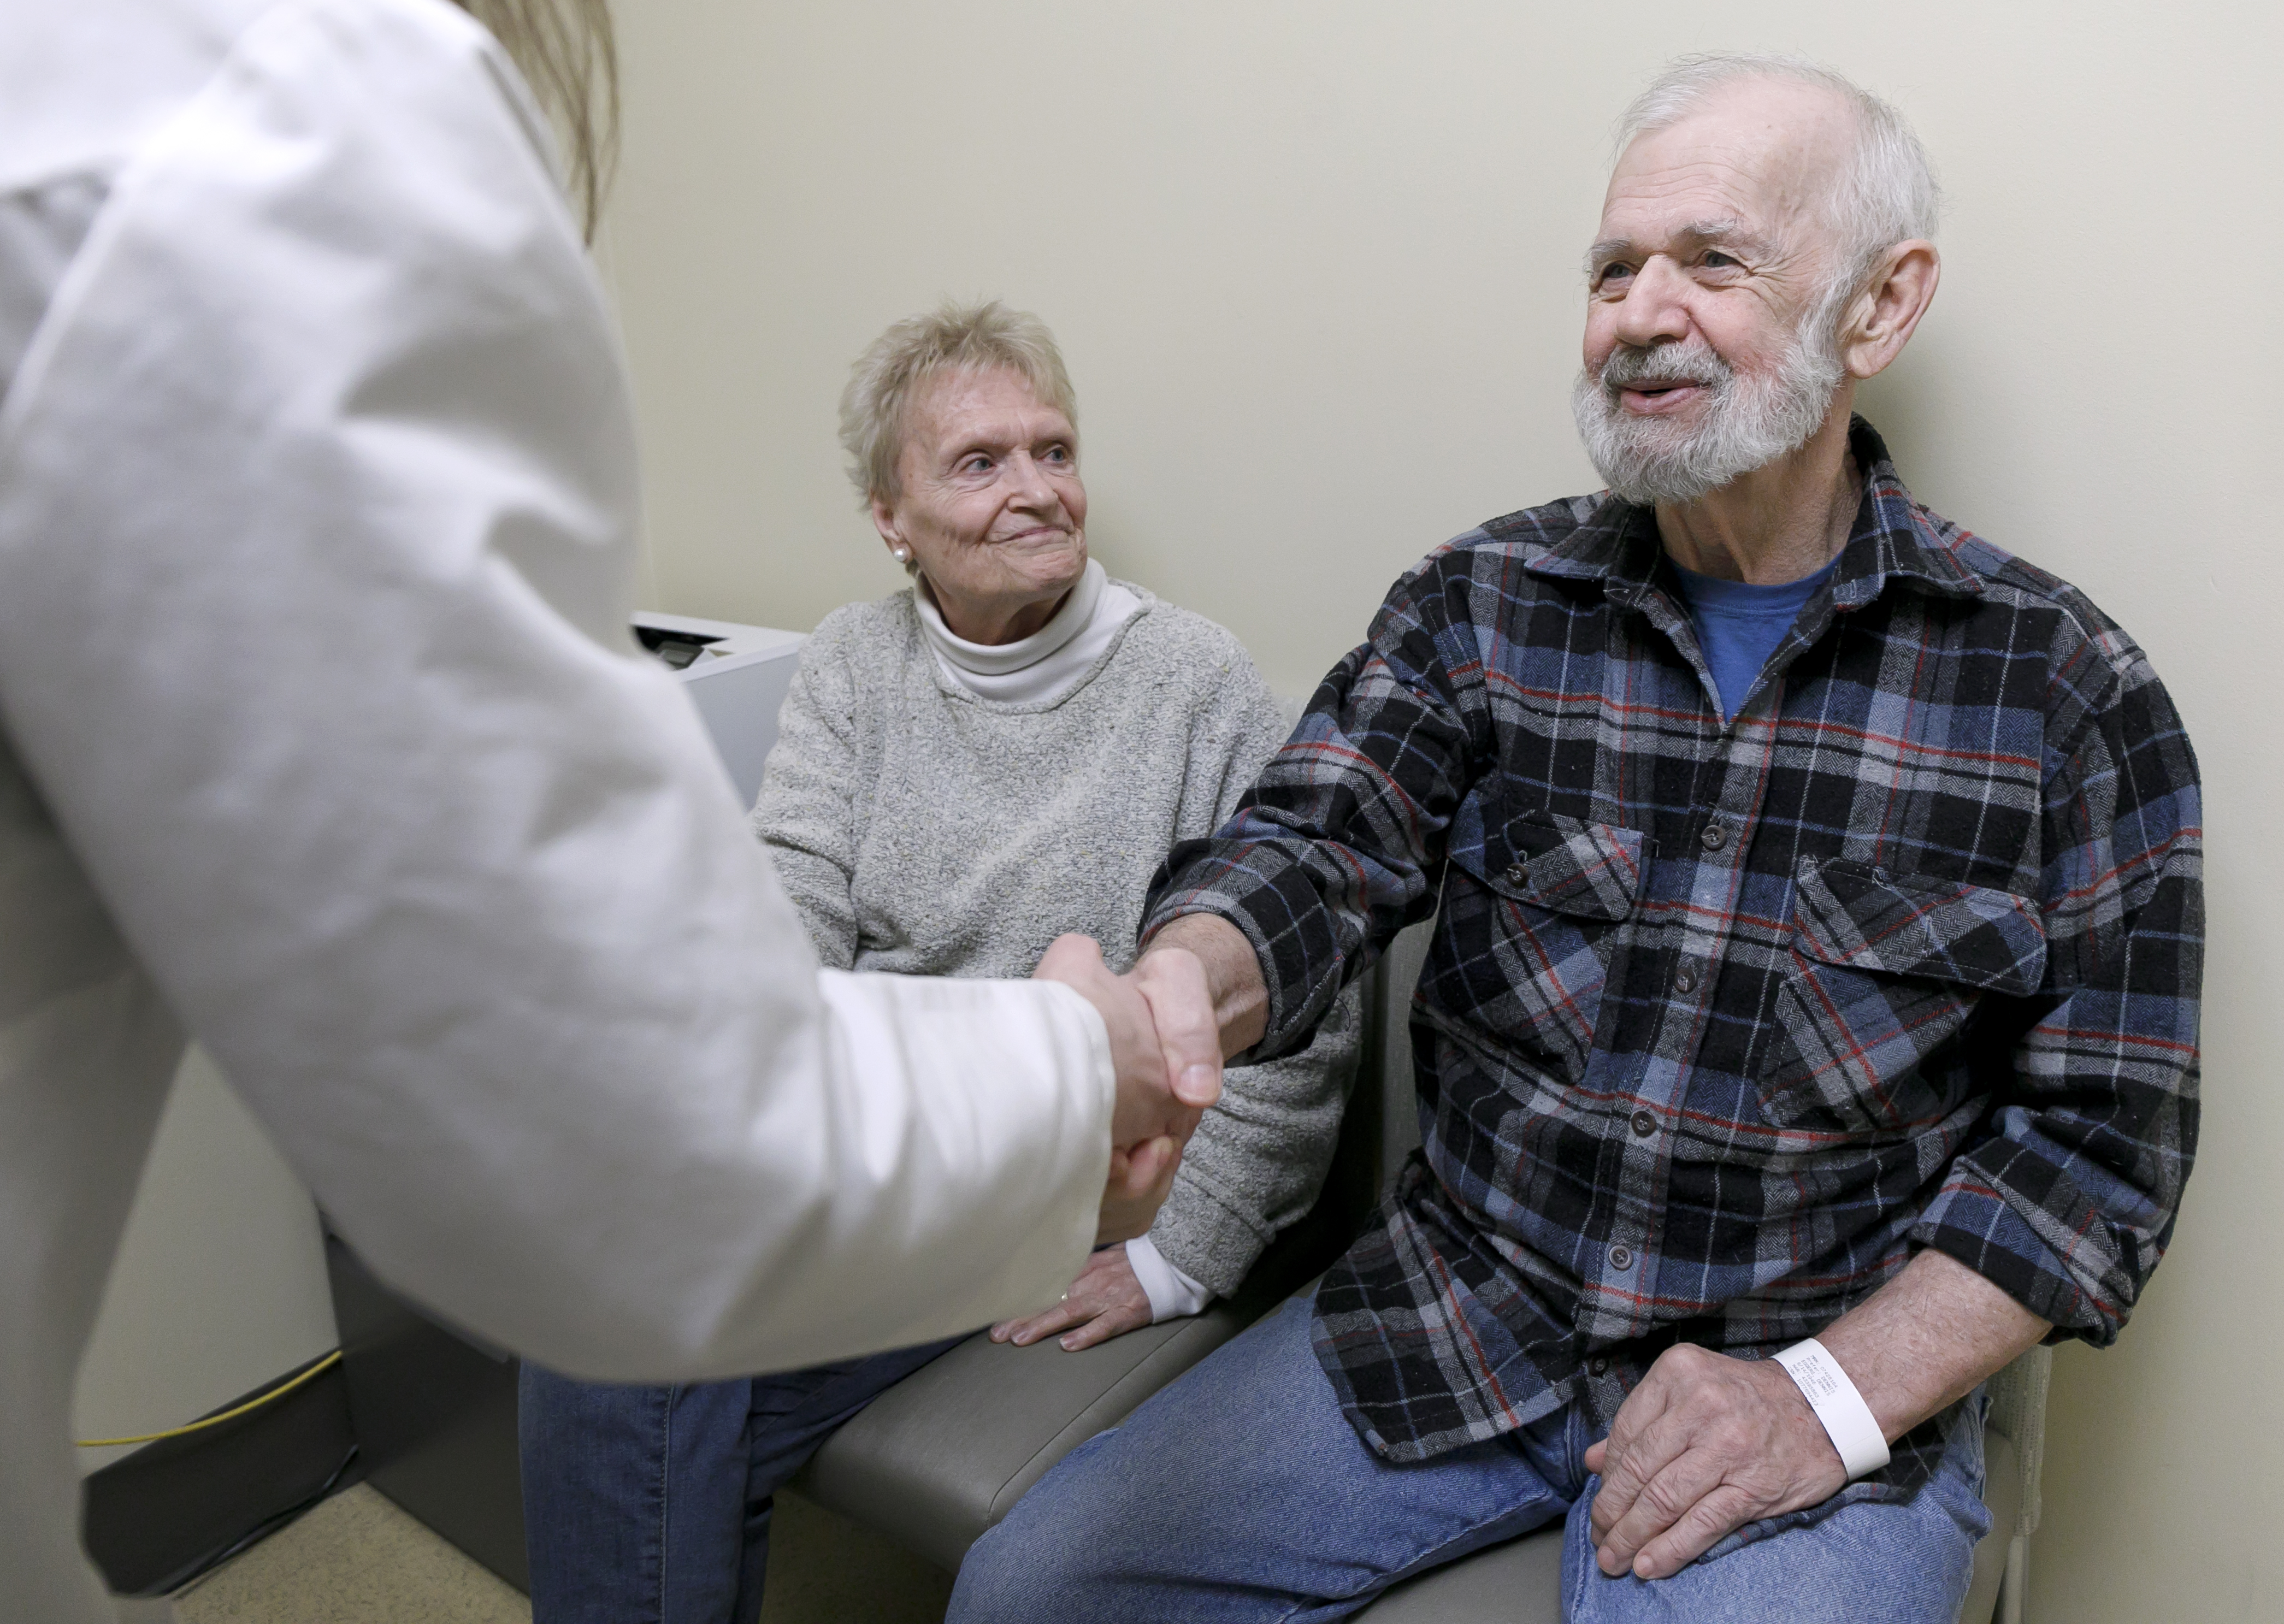 woman and man seated in doctor's office, woman looking at her husband as he shakes the hand of a doctor